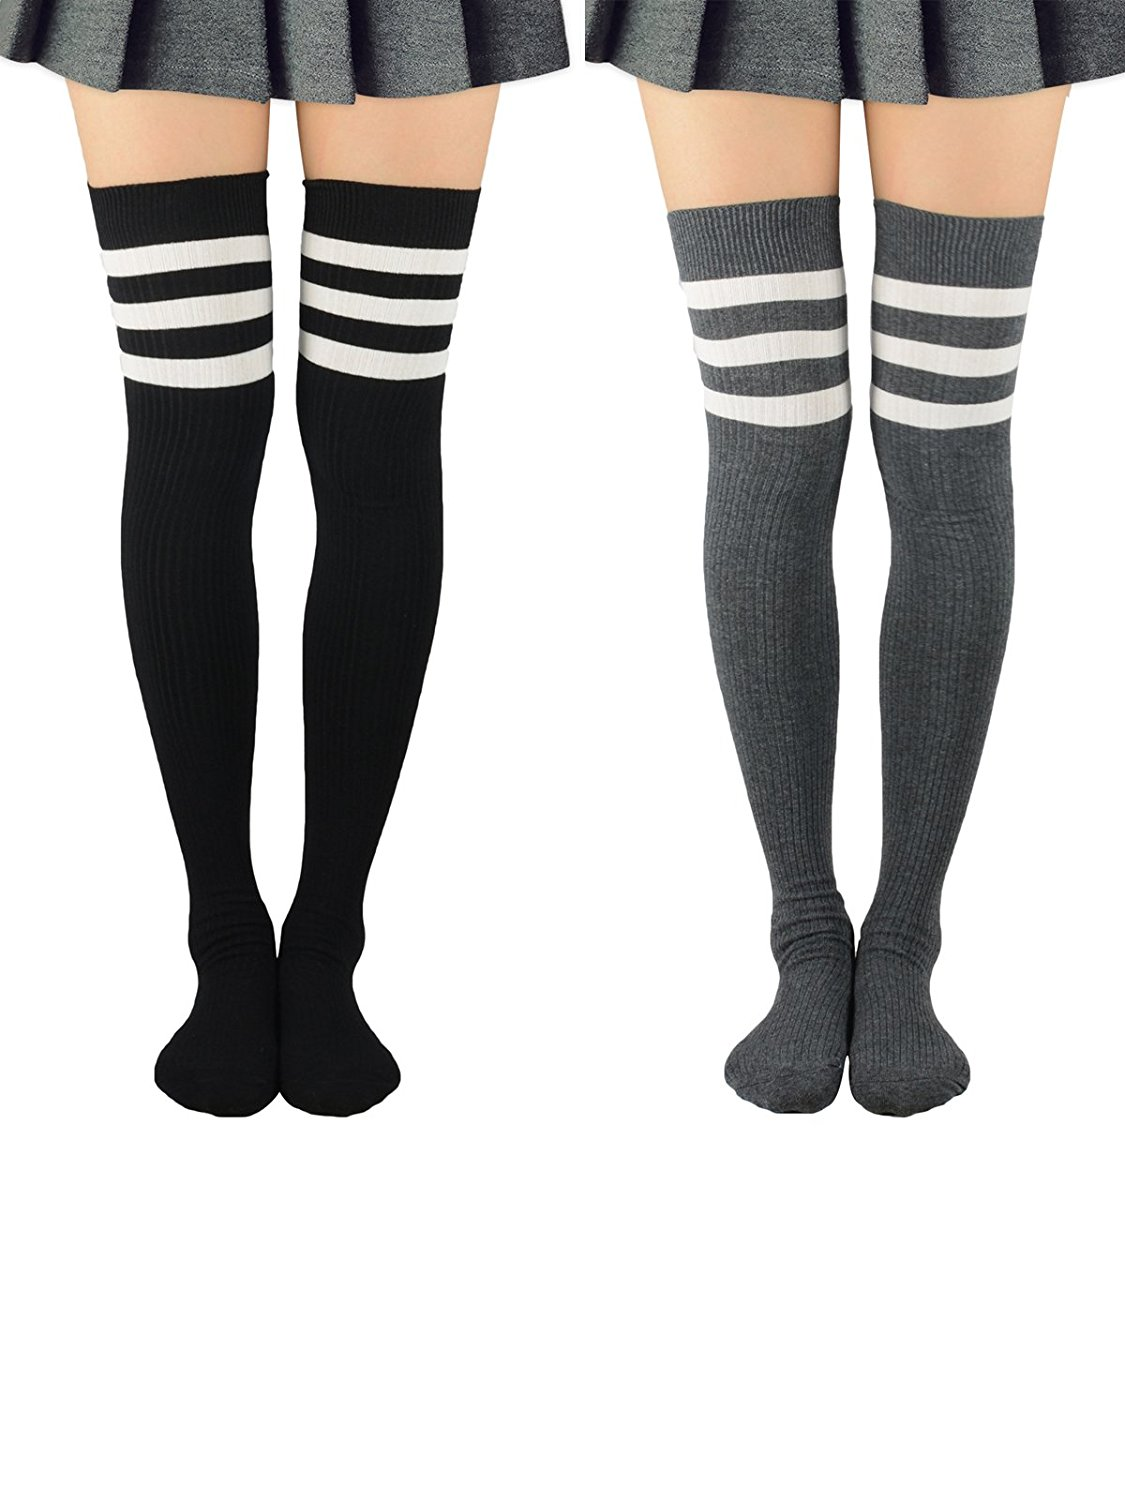 5d0fc79a0 Get Quotations · Zando Women Extro Long Thigh High Socks Fashion Stripe  Tube Stockings Casual Over The Knee Socks